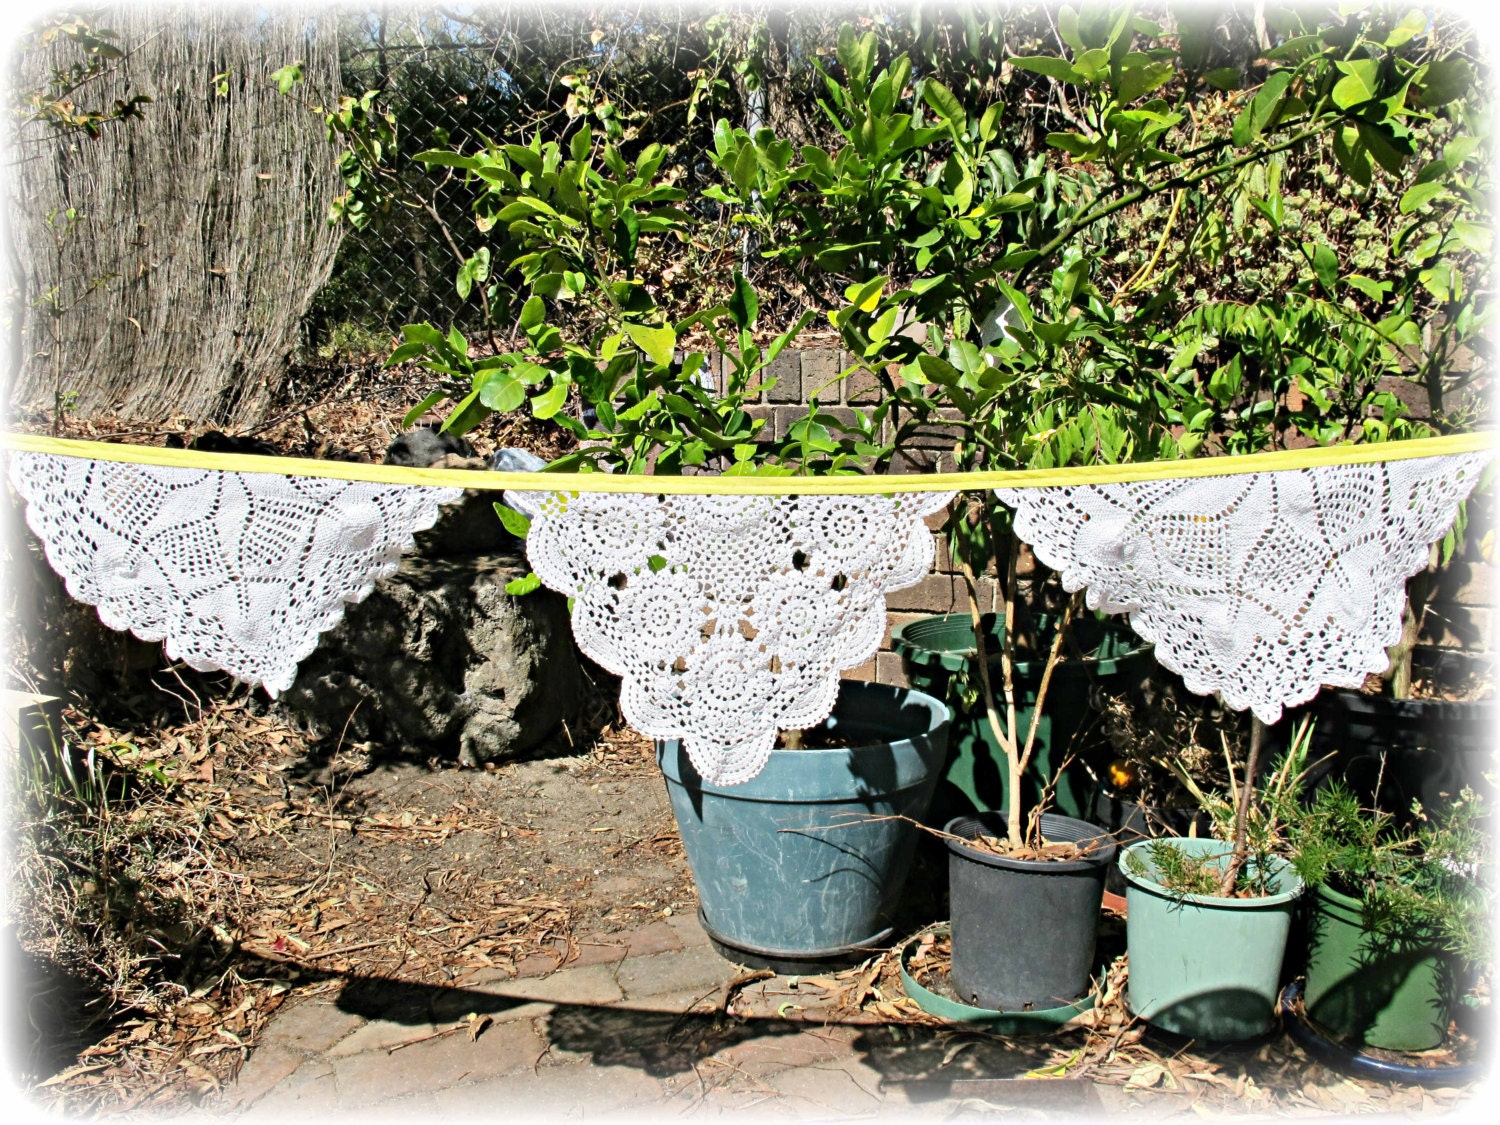 image vintage doily bunting yellow sunshine white crochet party wedding bridal domum vindemia